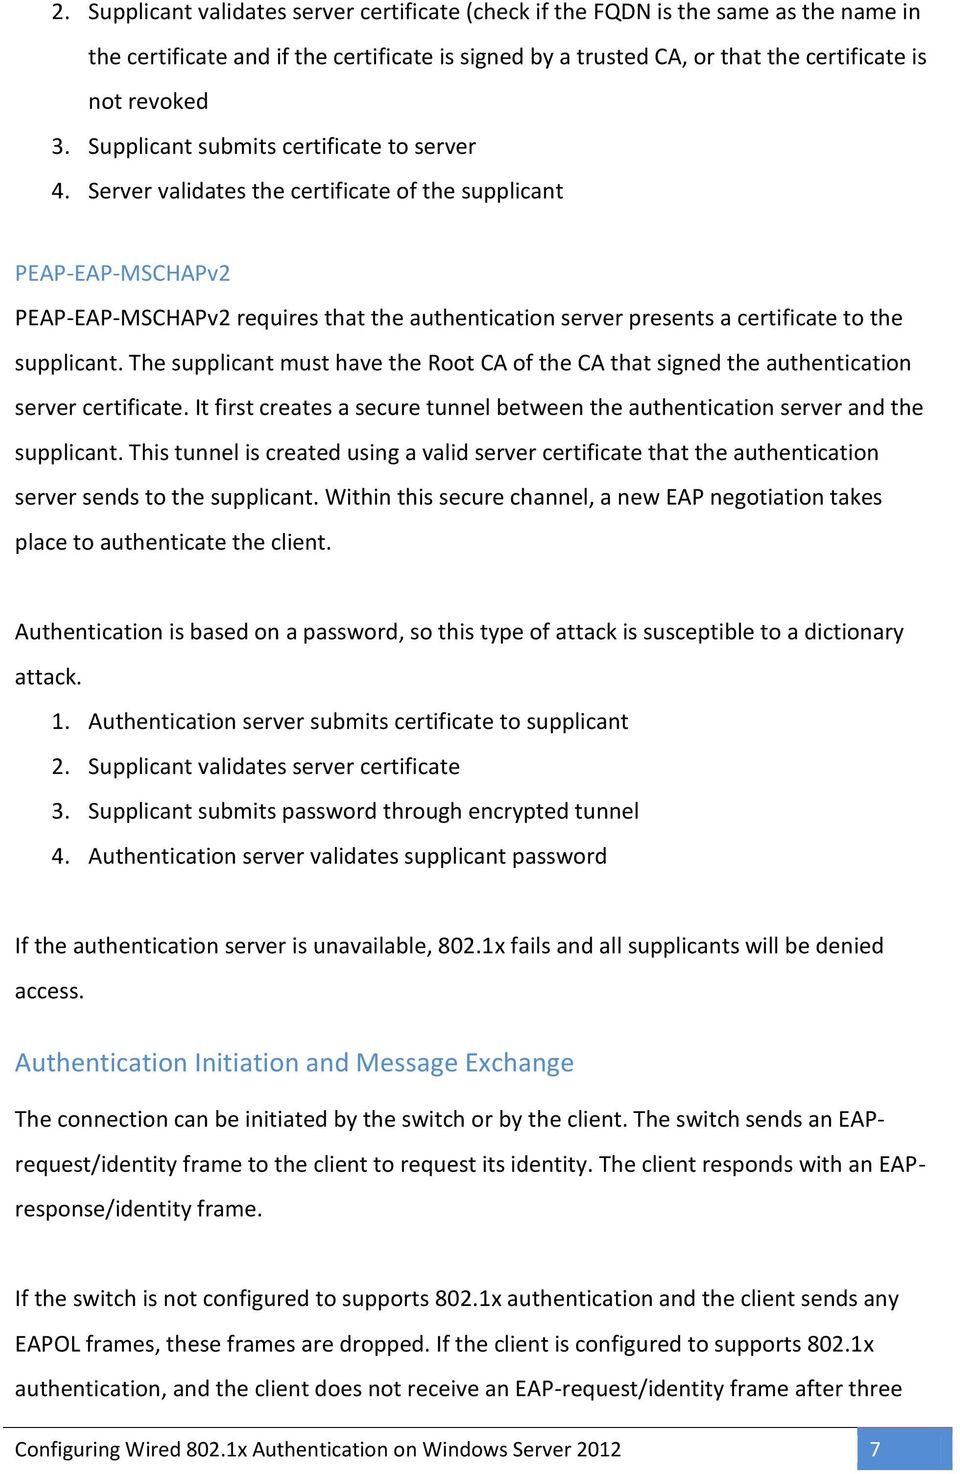 Server validates the certificate of the supplicant PEAP-EAP-MSCHAPv2 PEAP-EAP-MSCHAPv2 requires that the authentication server presents a certificate to the supplicant.